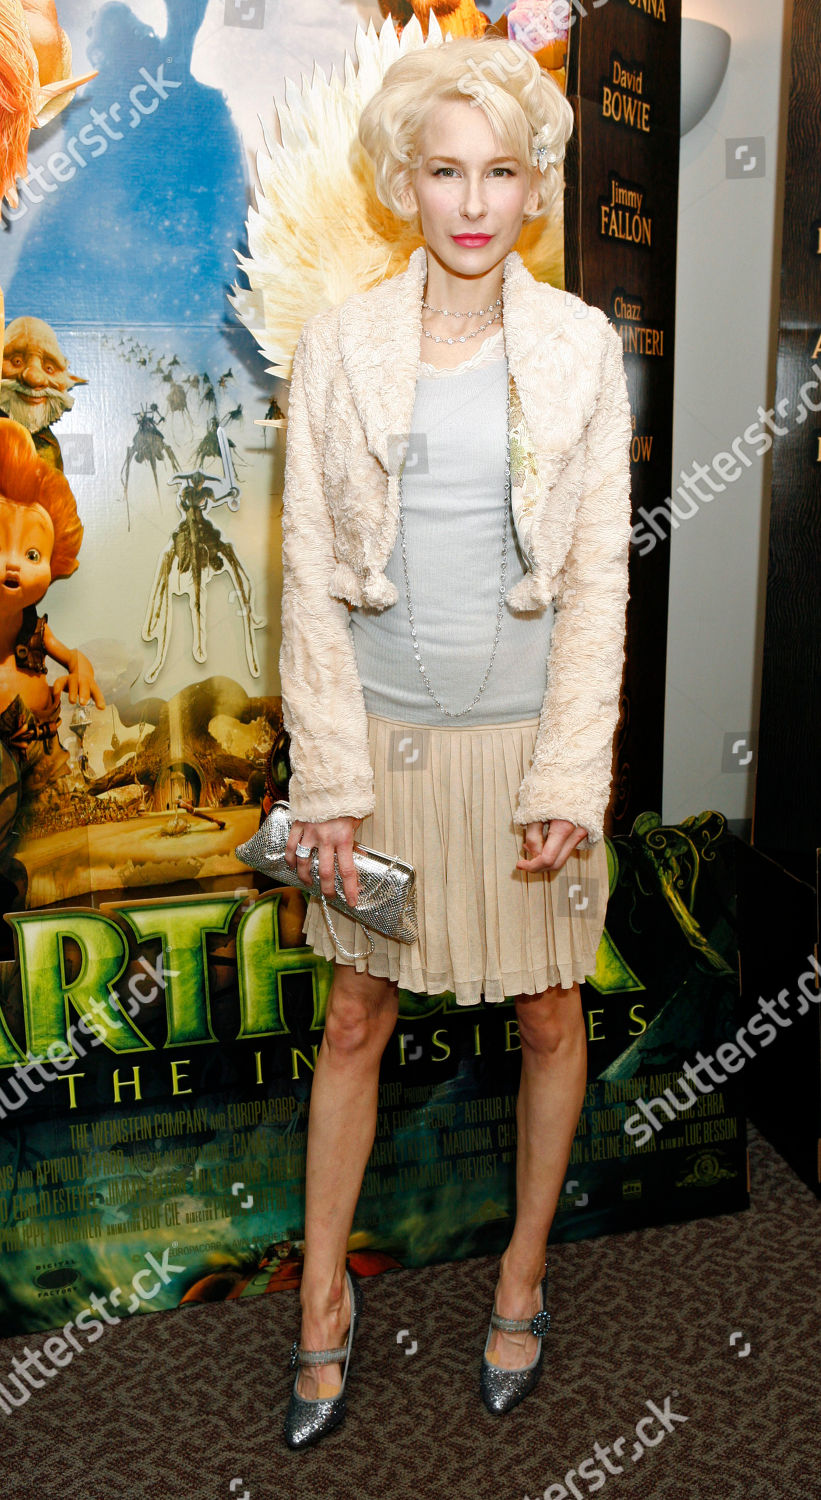 Penny Balfour Actress Penny Balfour Arrives Premiere Editorial Stock Photo Stock Image Shutterstock